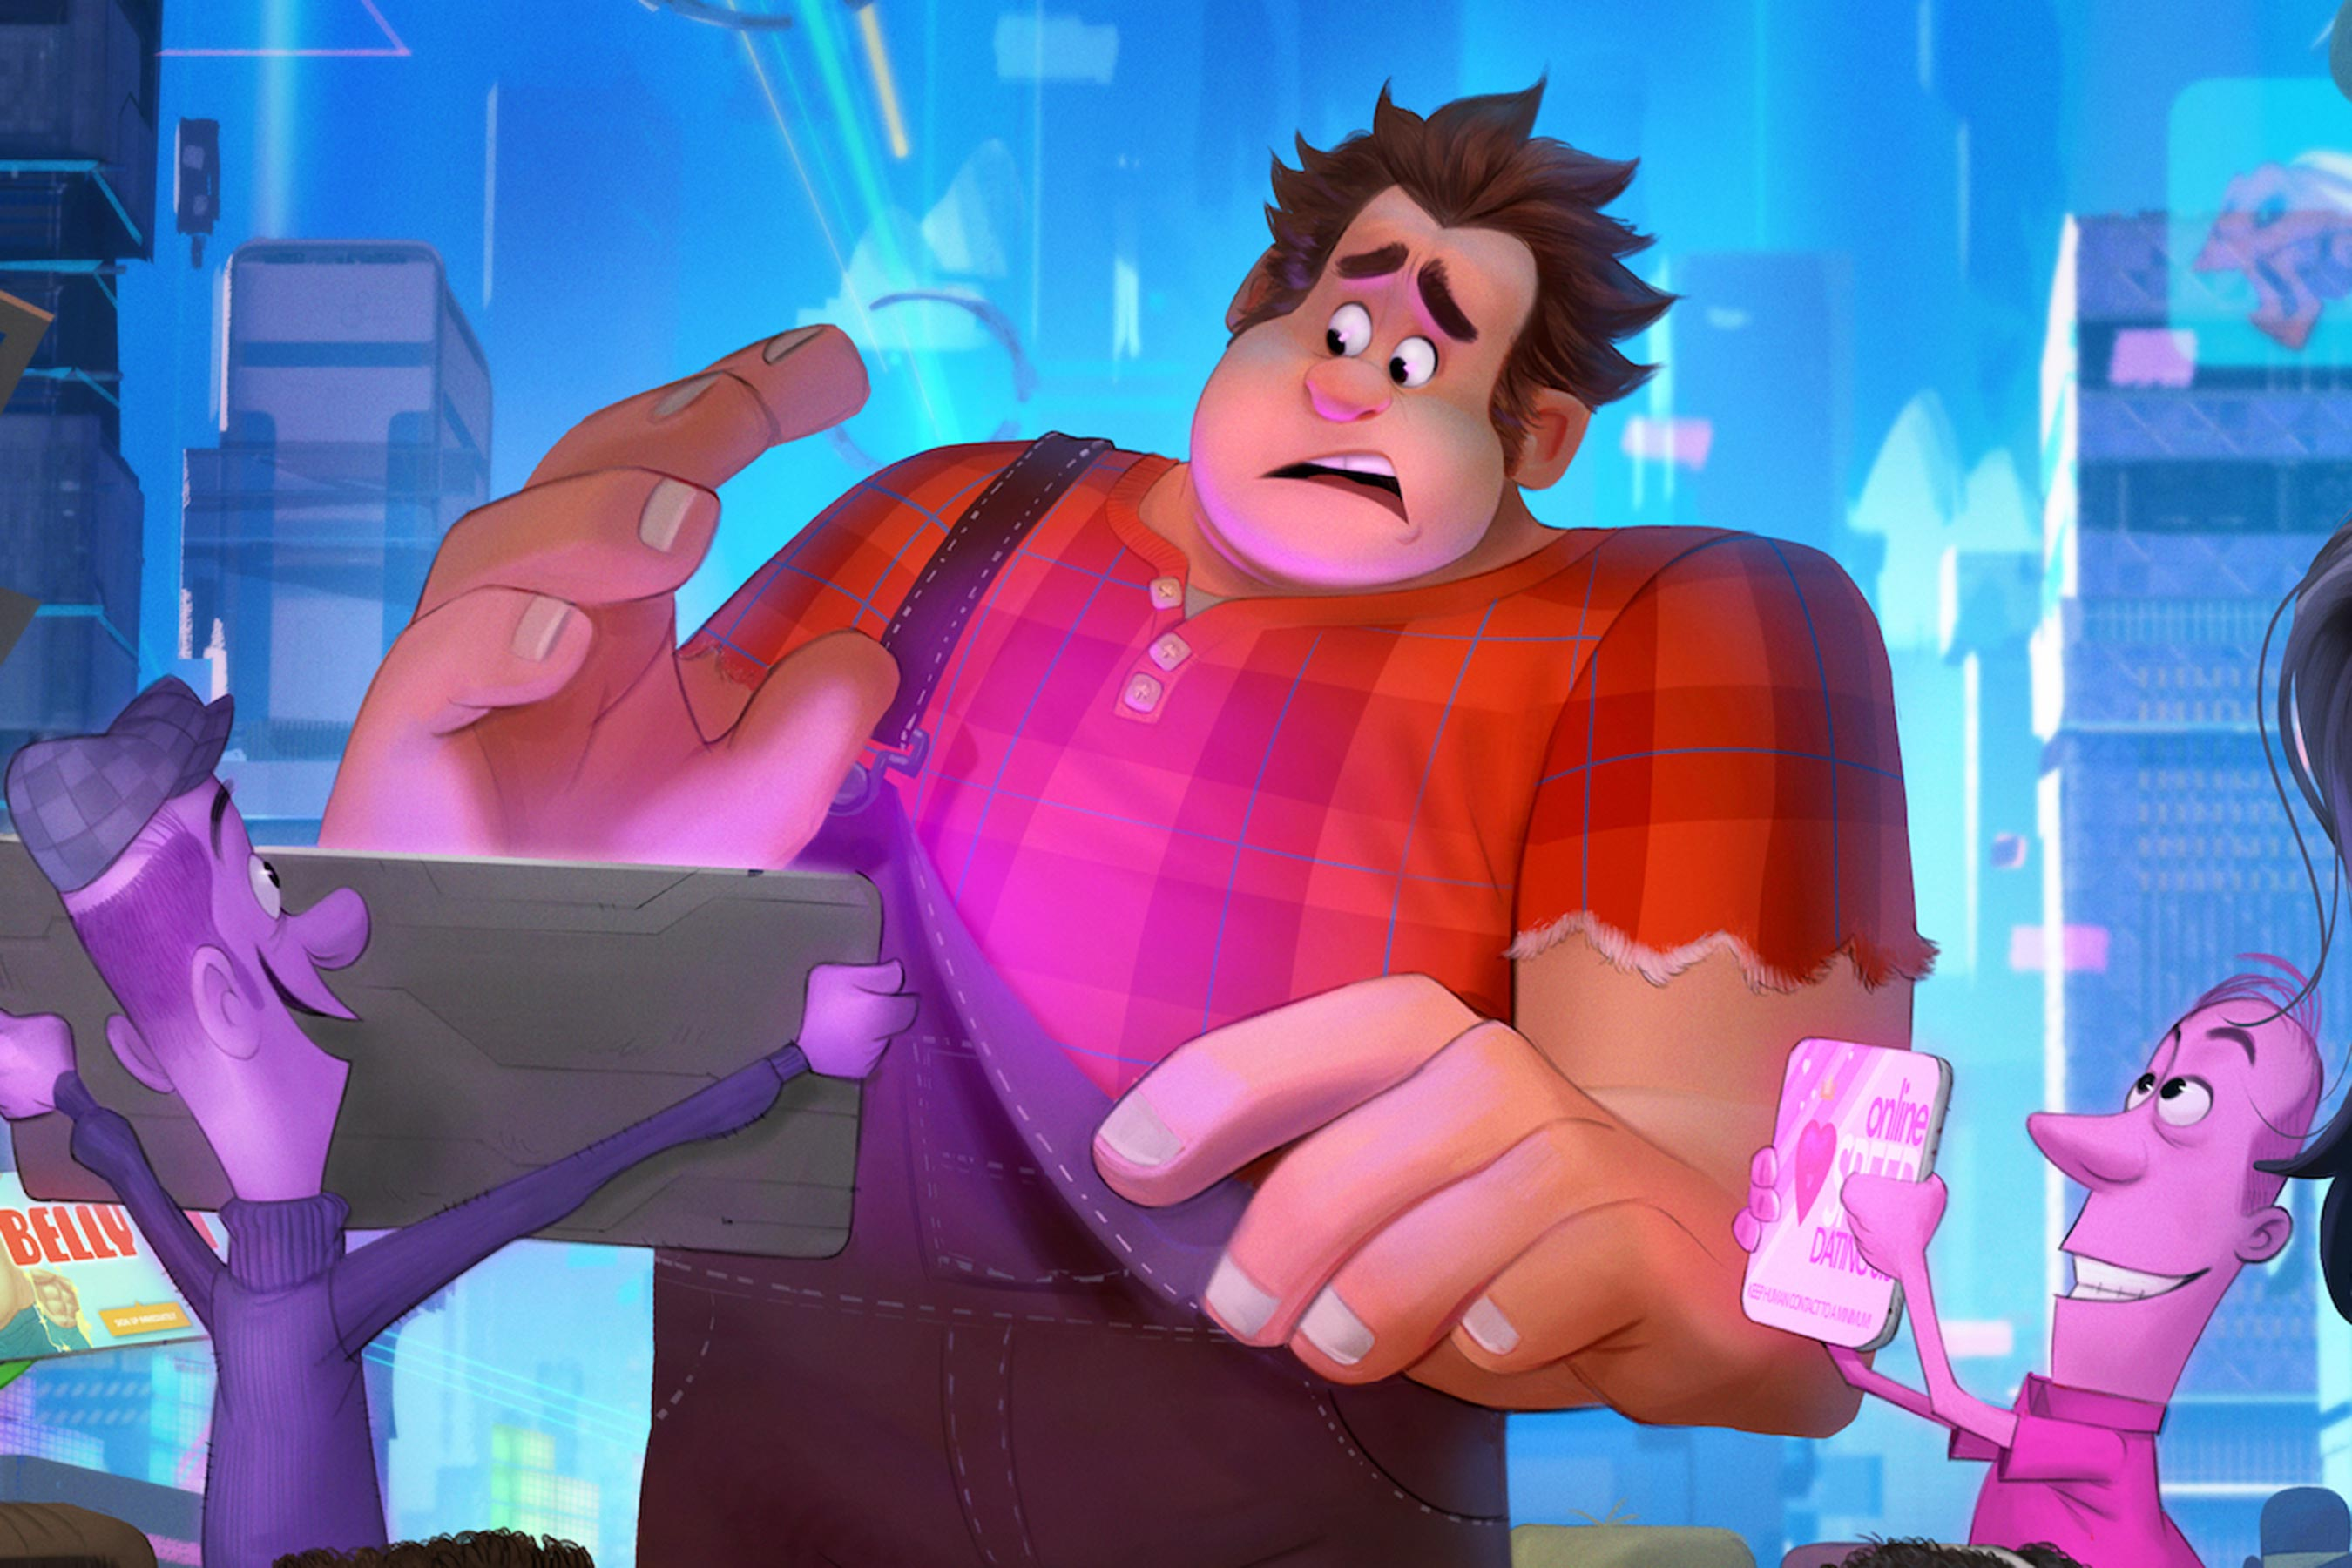 Wreck-It Ralph 2: Watch the first full trailer